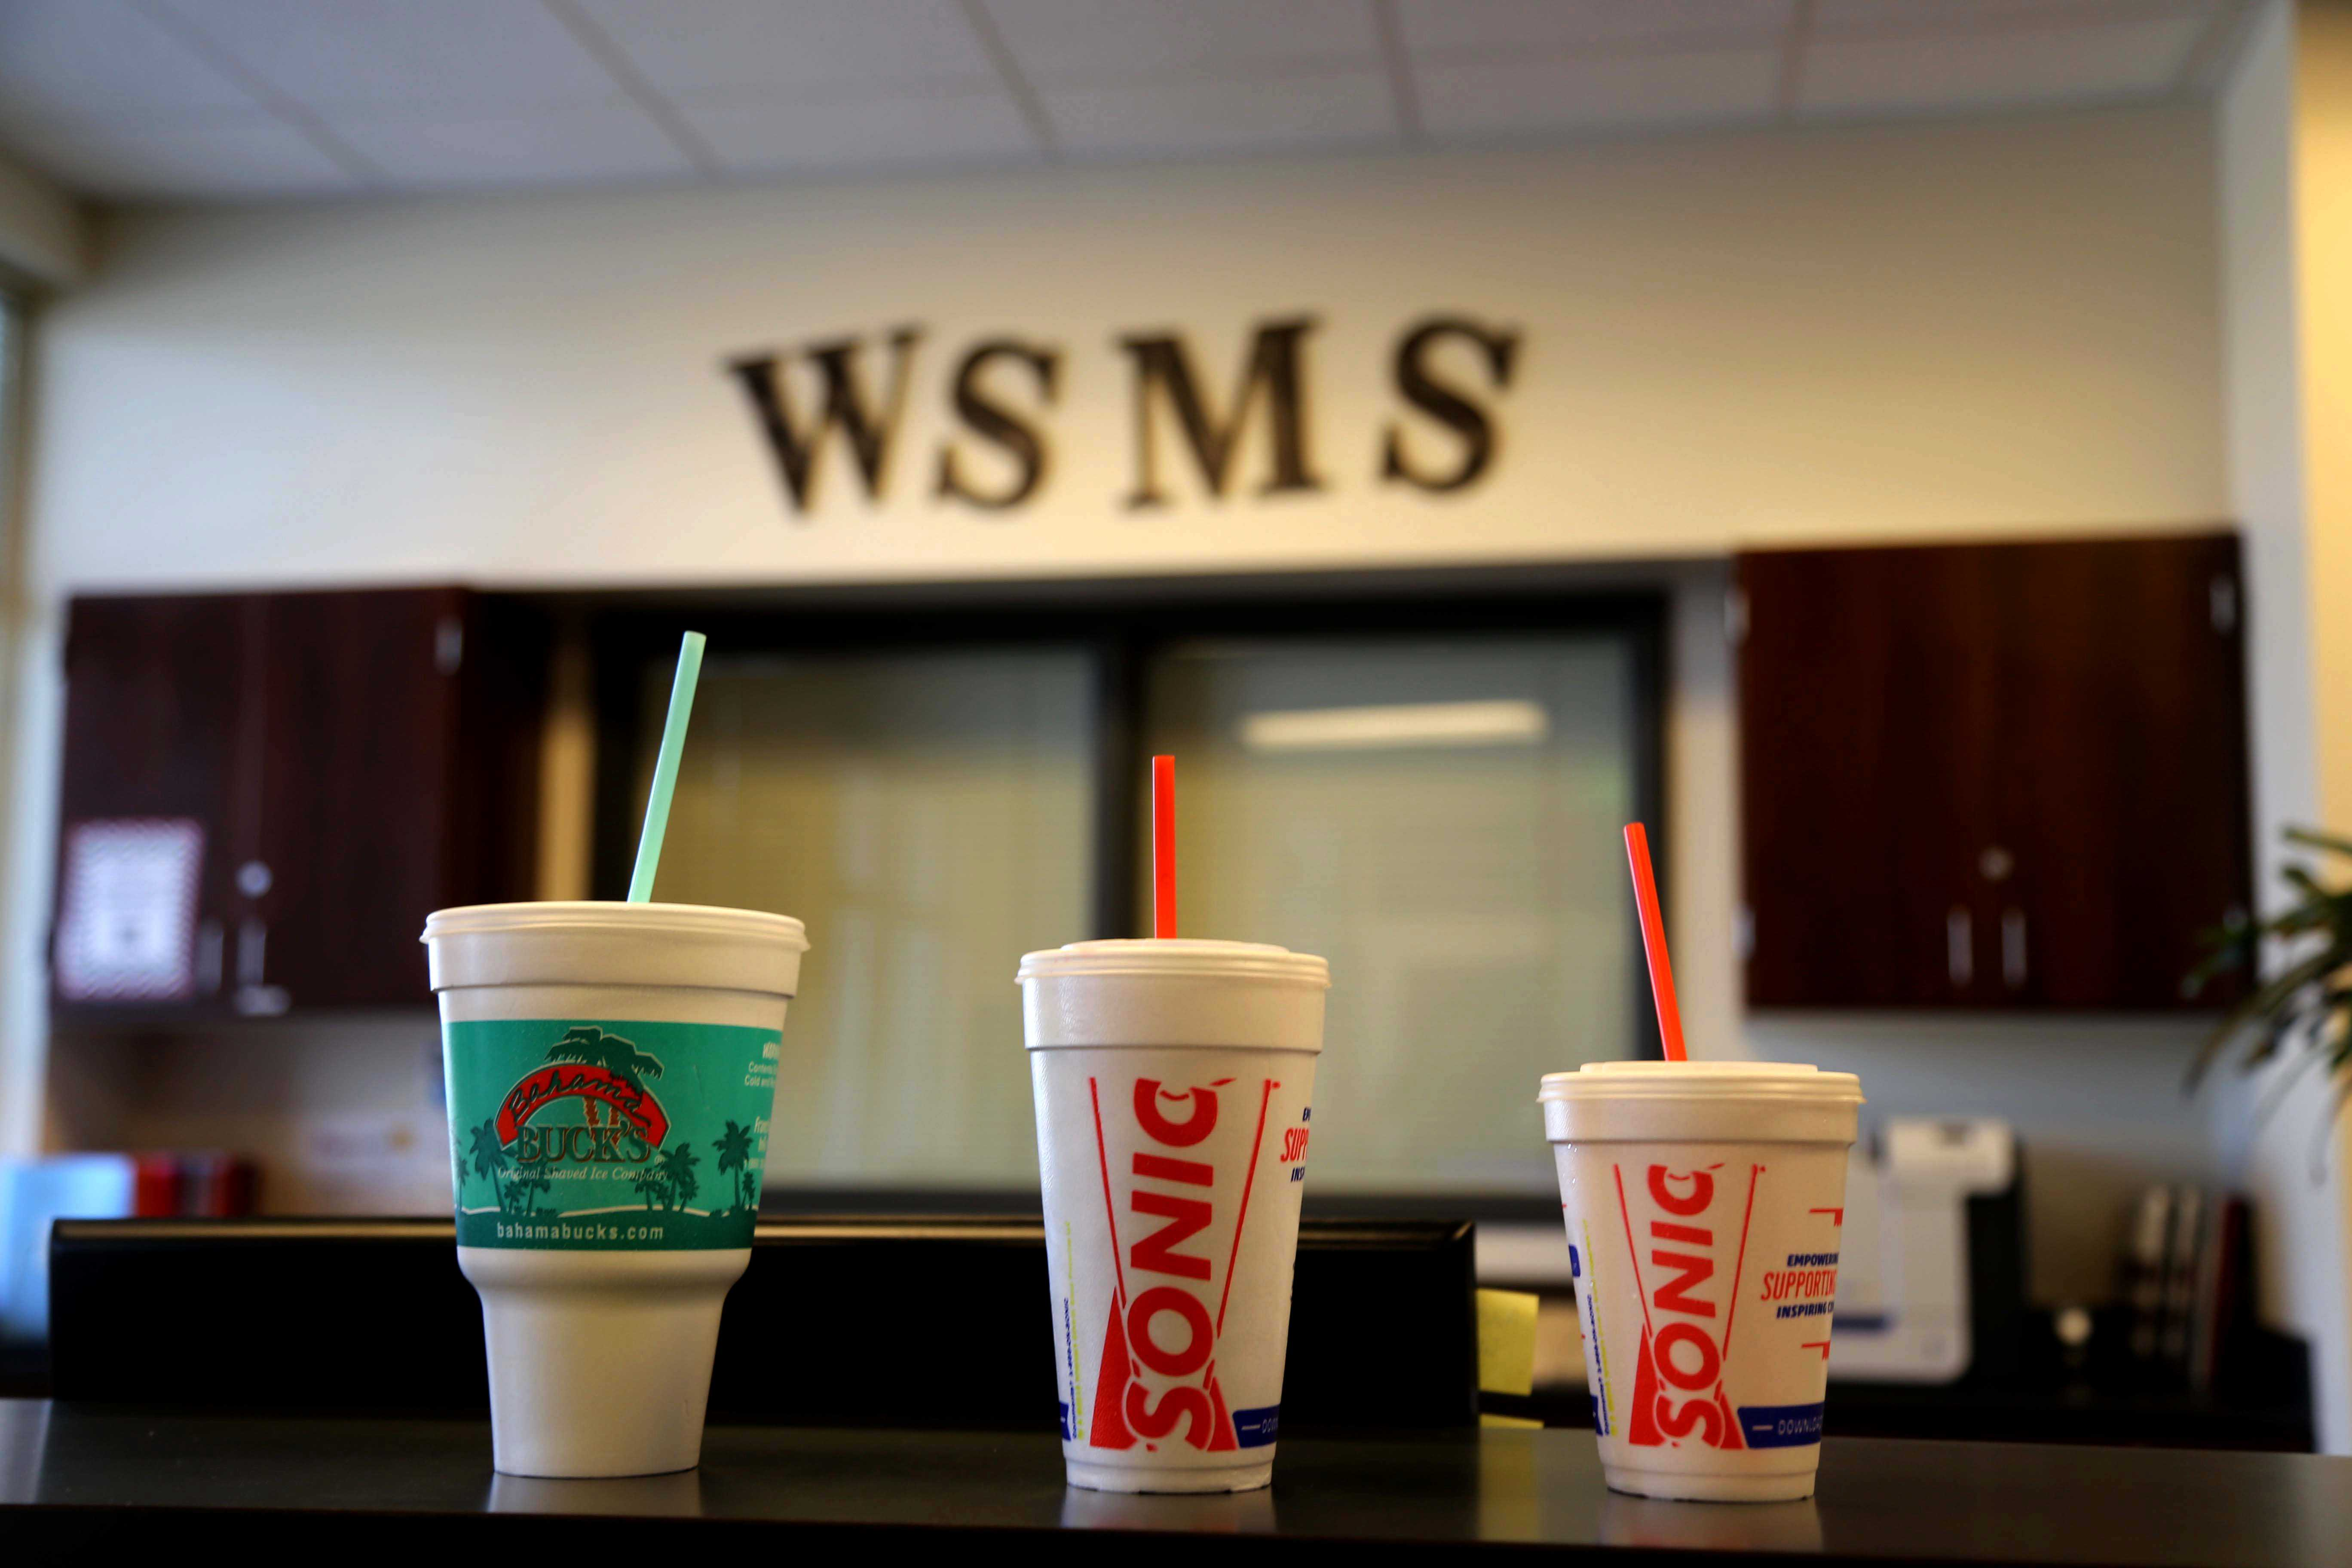 Due to the opening of several food chains, there has been an influx of drinks drinks from places like Starbucks and Sonic carried at the middle school. Students are no longer to permitted carry any drink other than water.